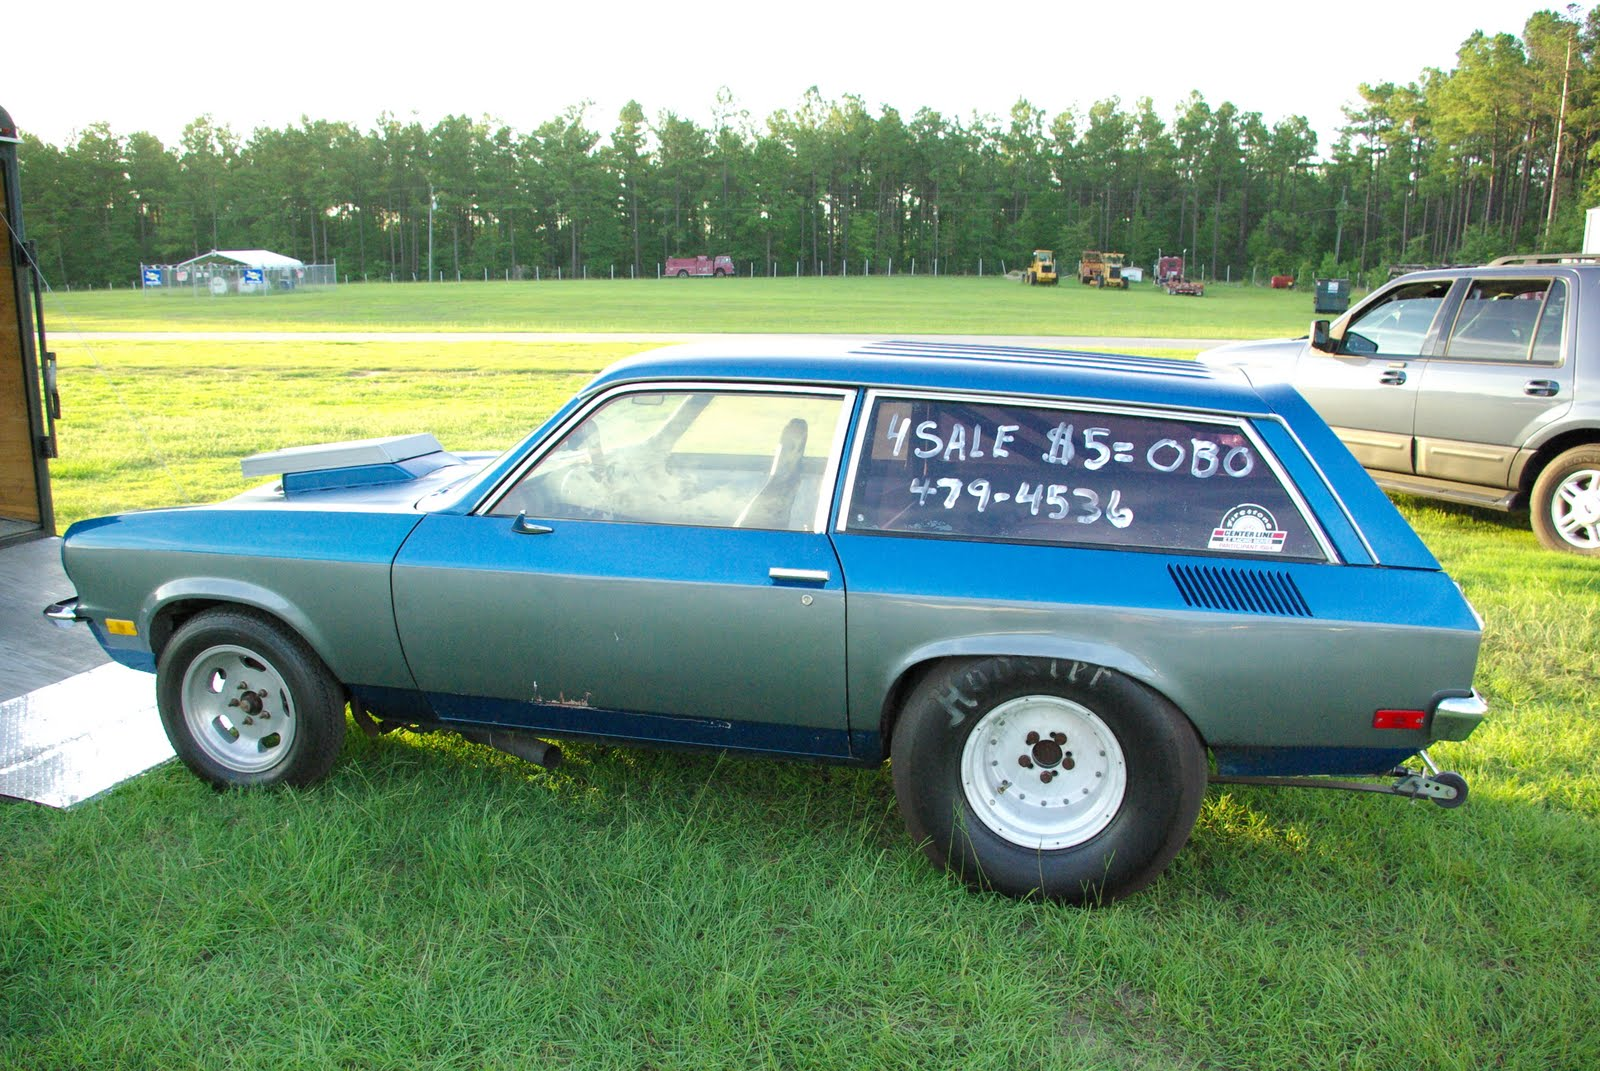 Vega Wagon Drag Car http://fastshutterphotos.blogspot.com/2010/07/for-sale-vega-wagon-rolling-chassis.html